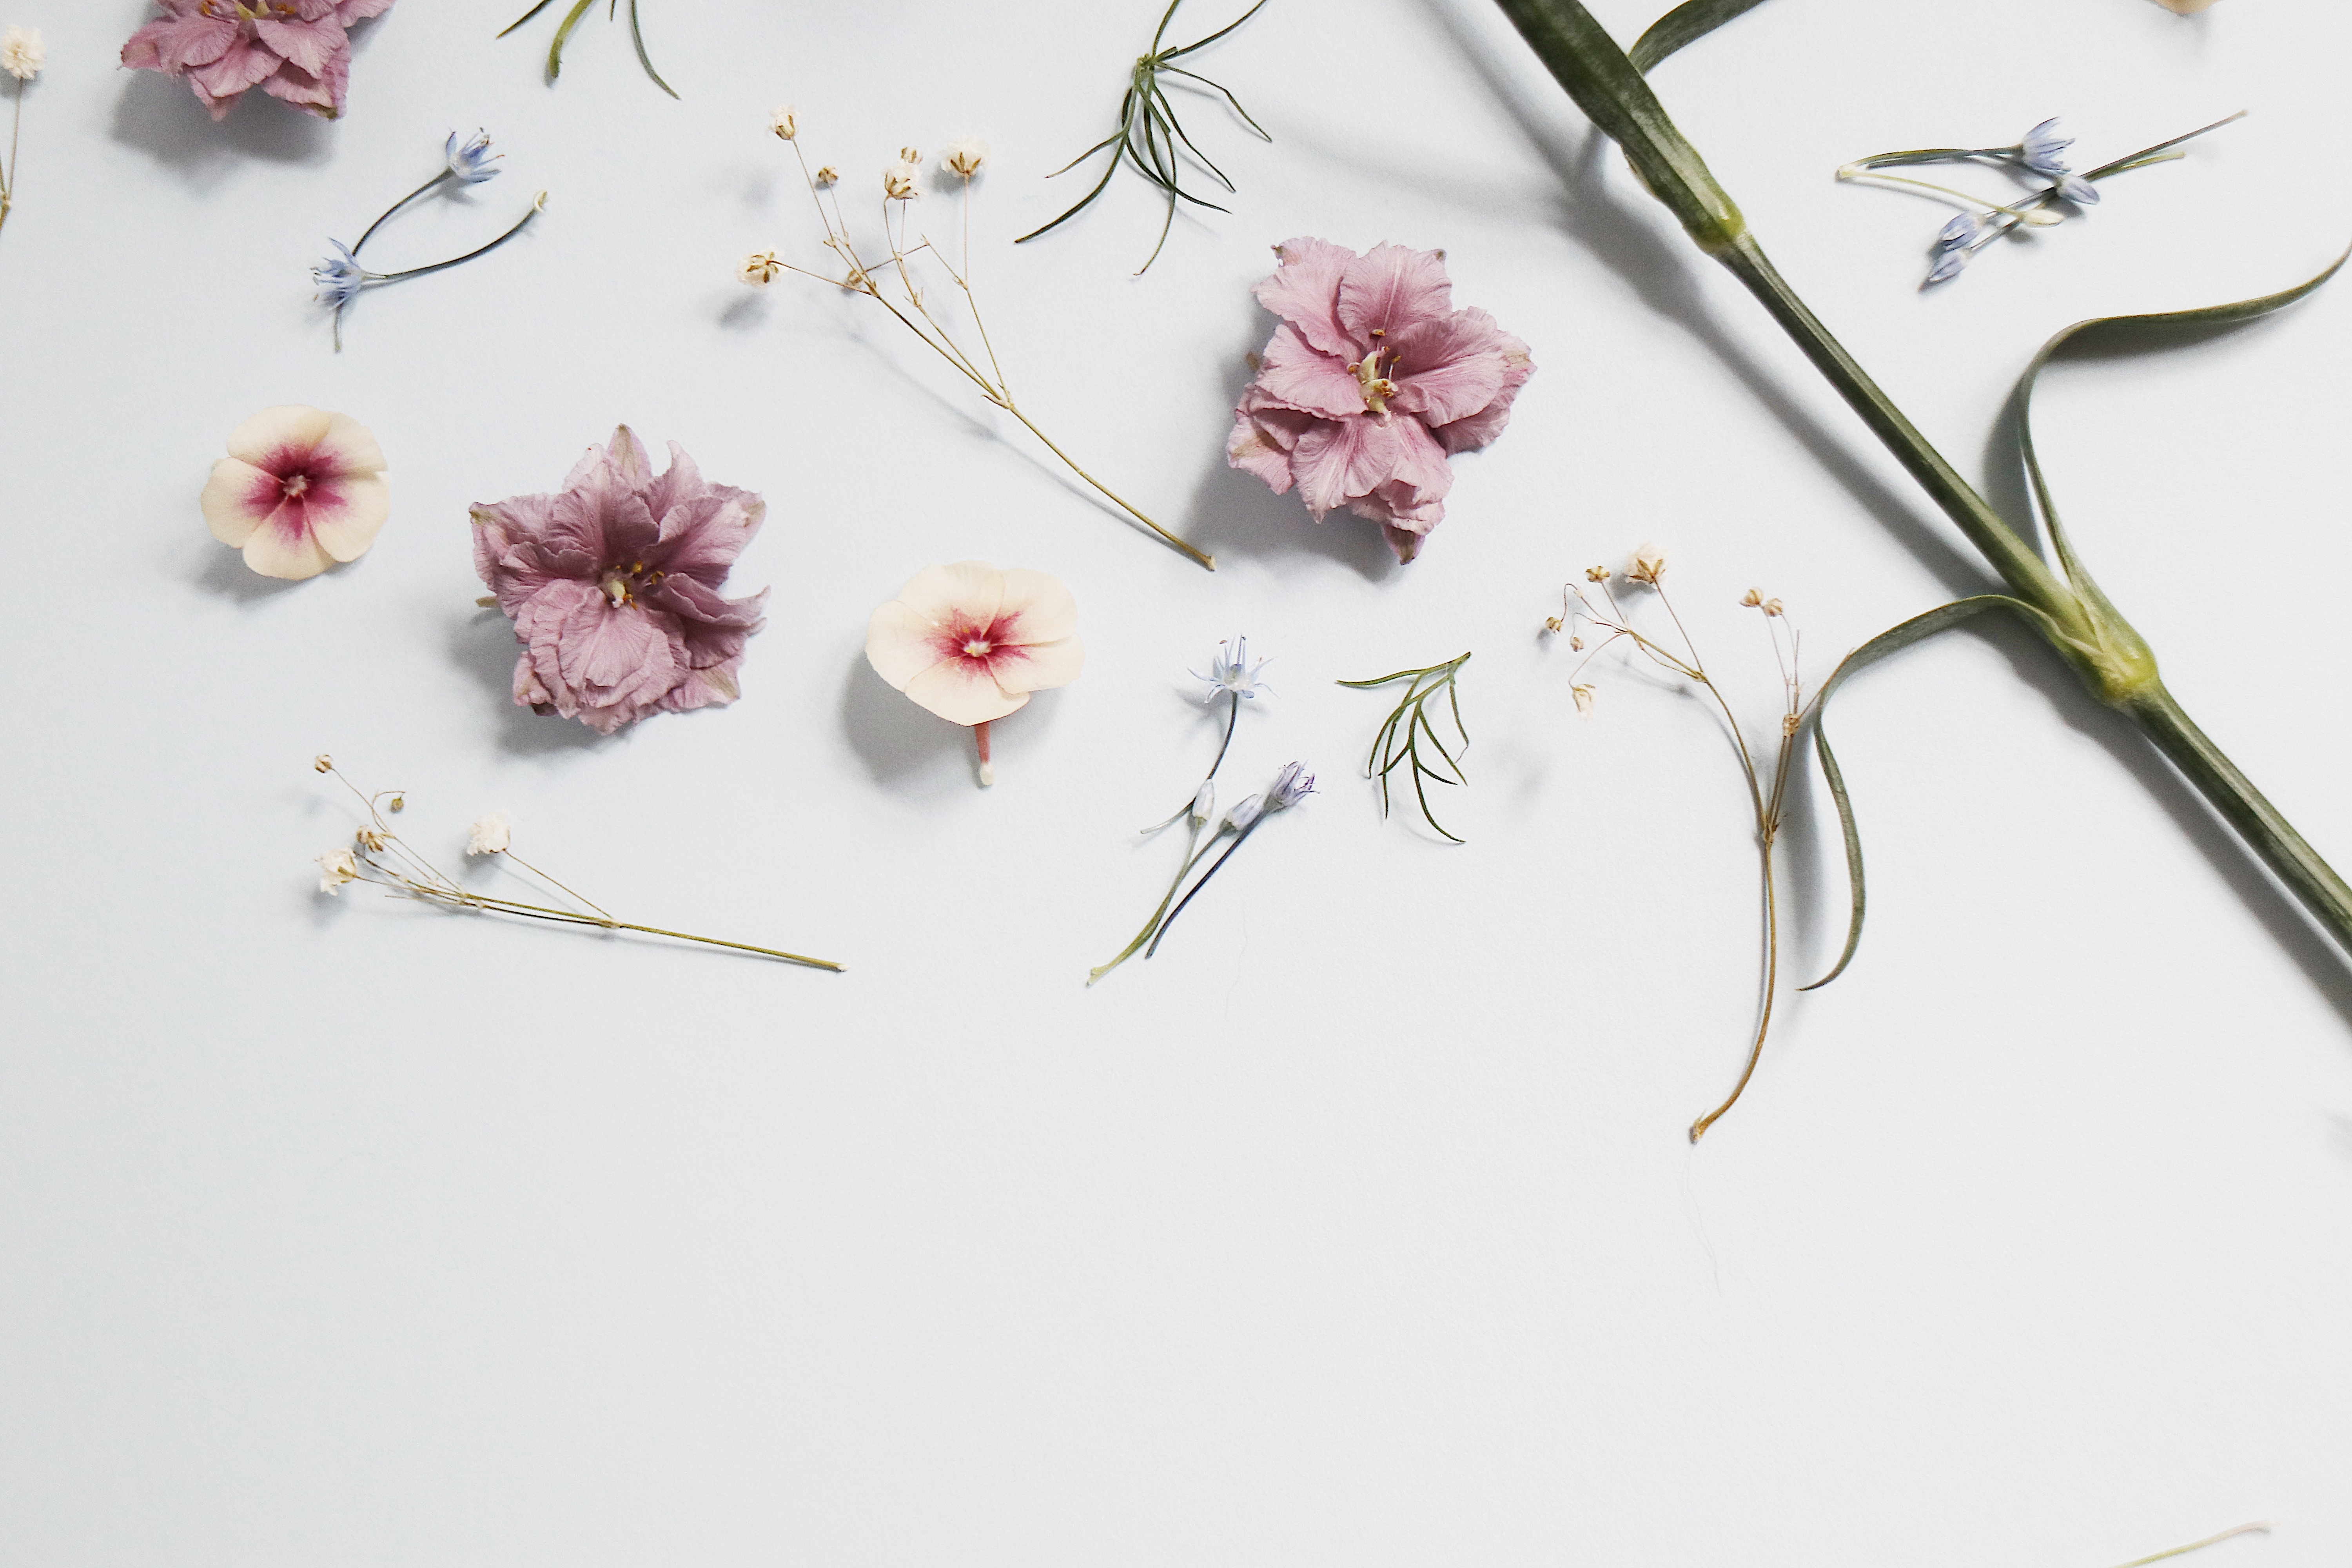 popsiclearts | Sign Up for 32% OFF on Our First Floral Printed Collection